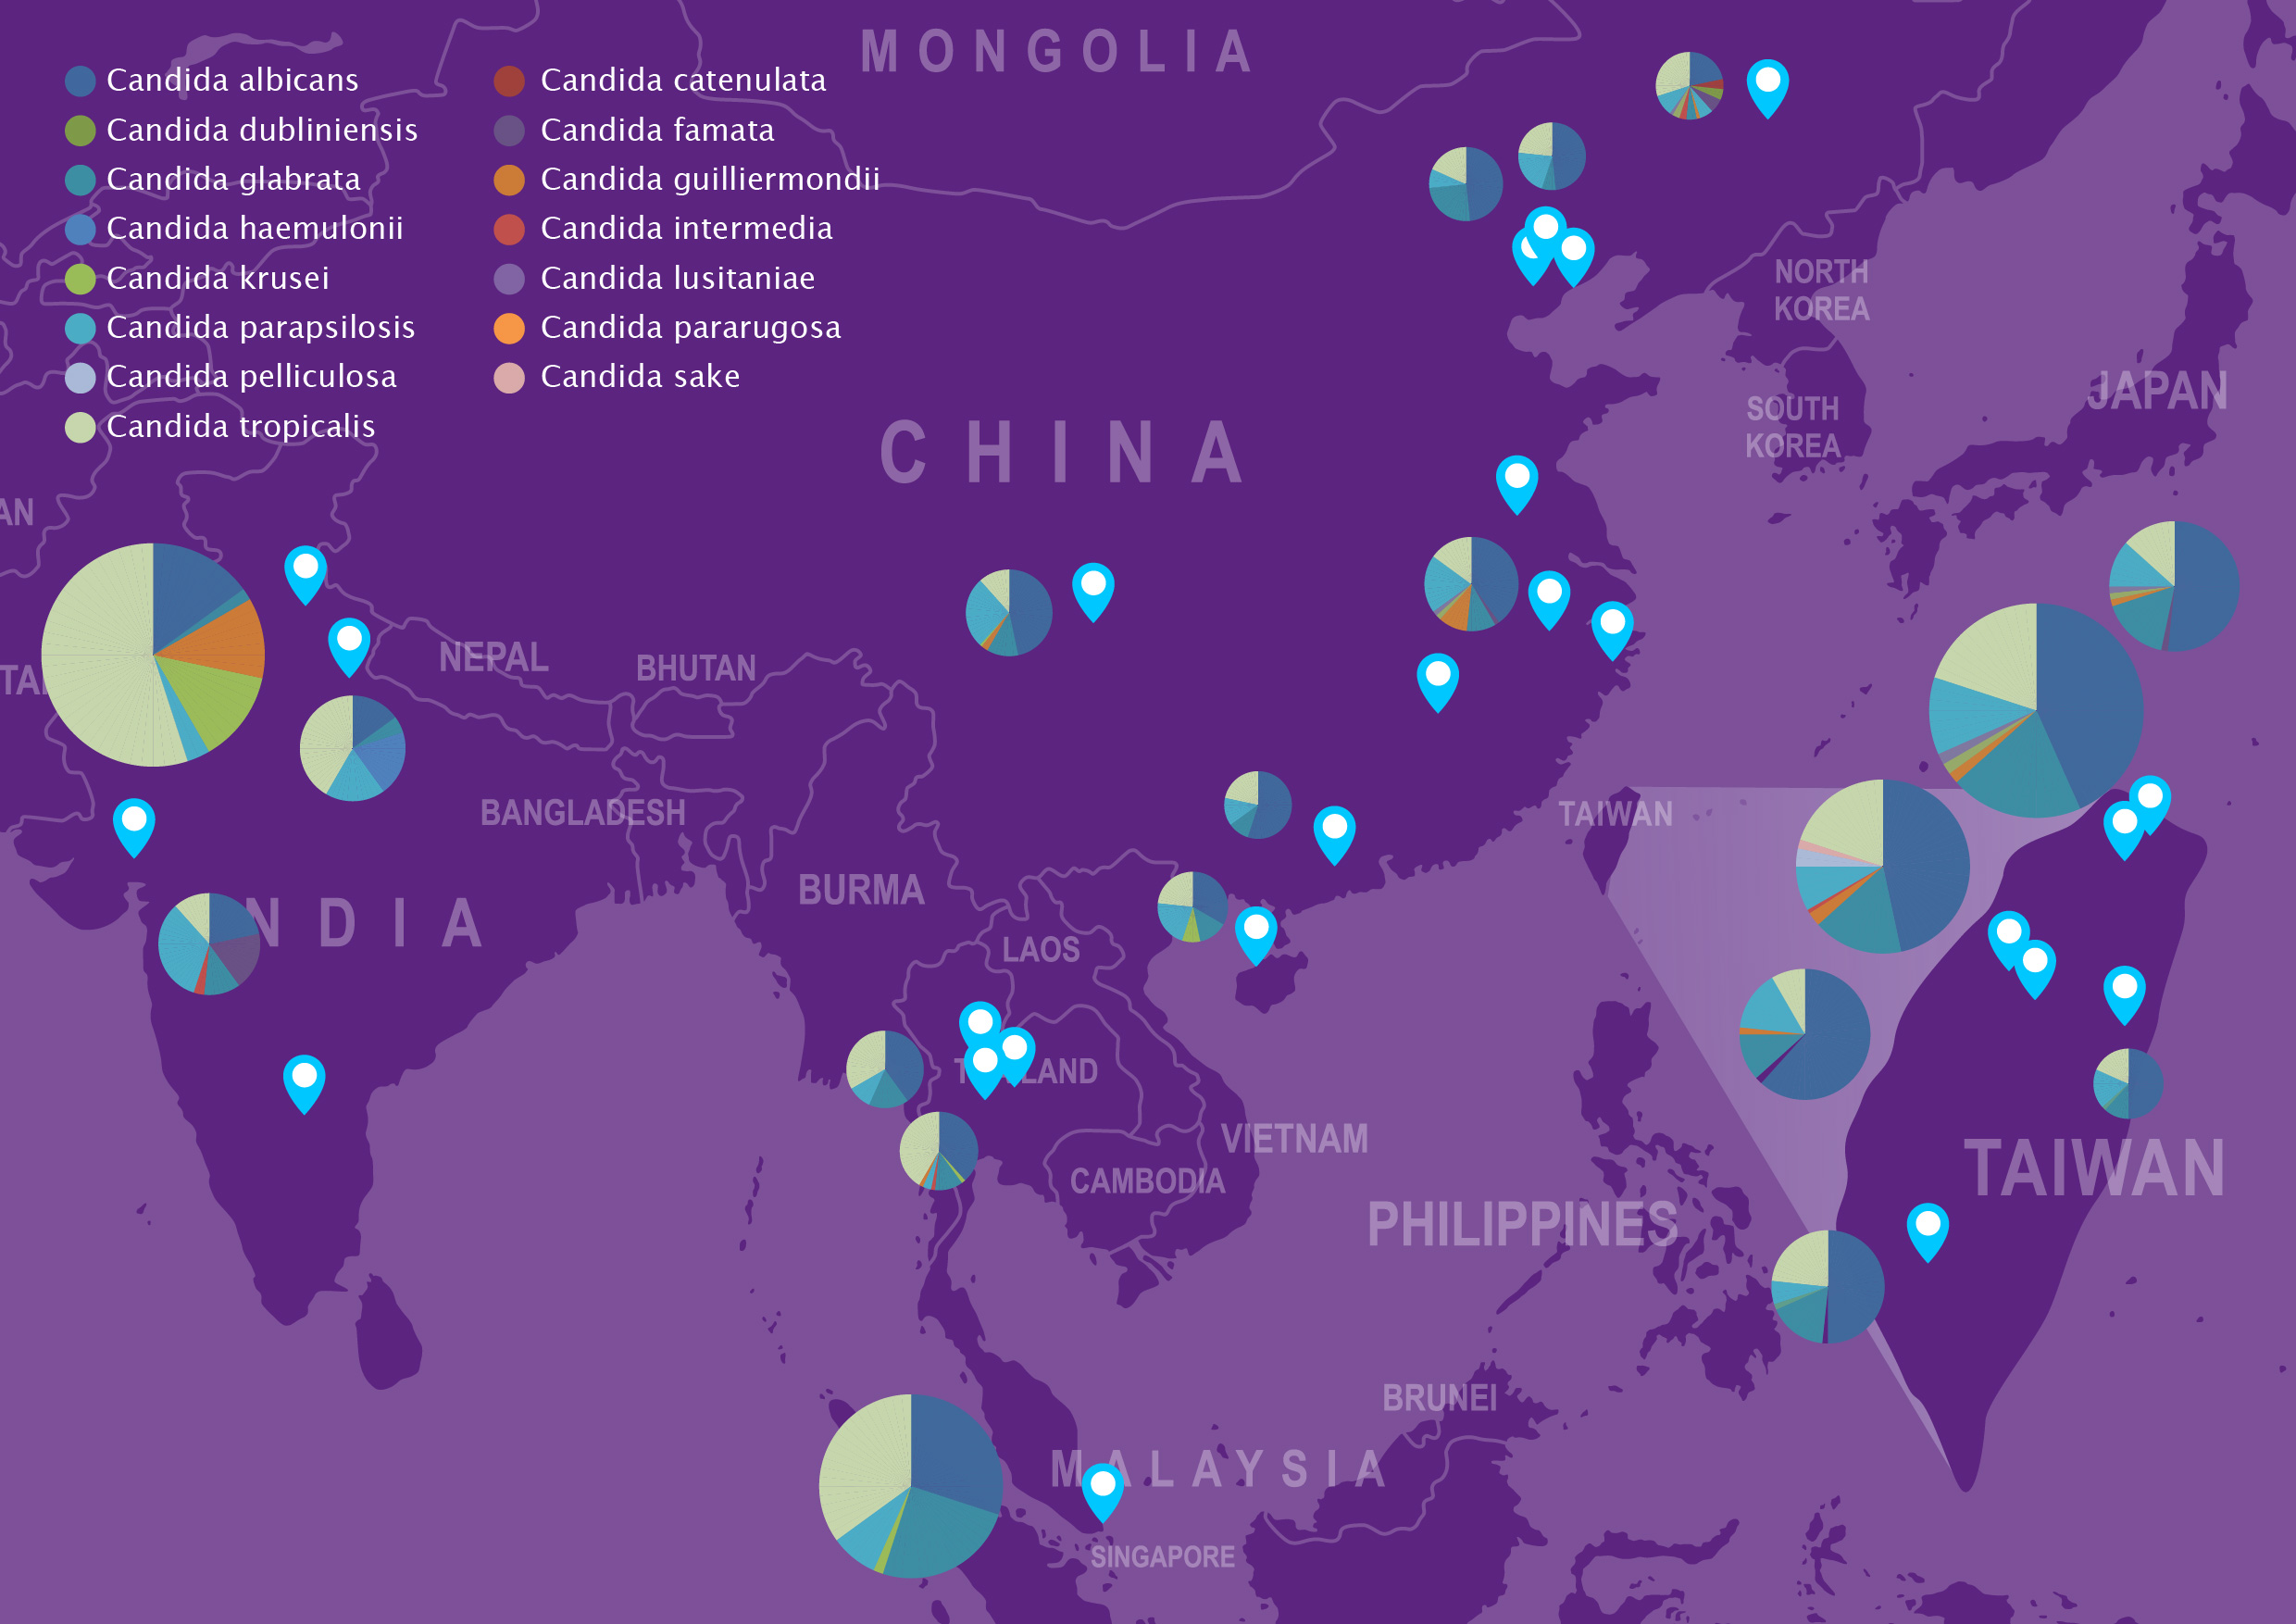 AFWG_Candidemia_Asia_Data_Map_2